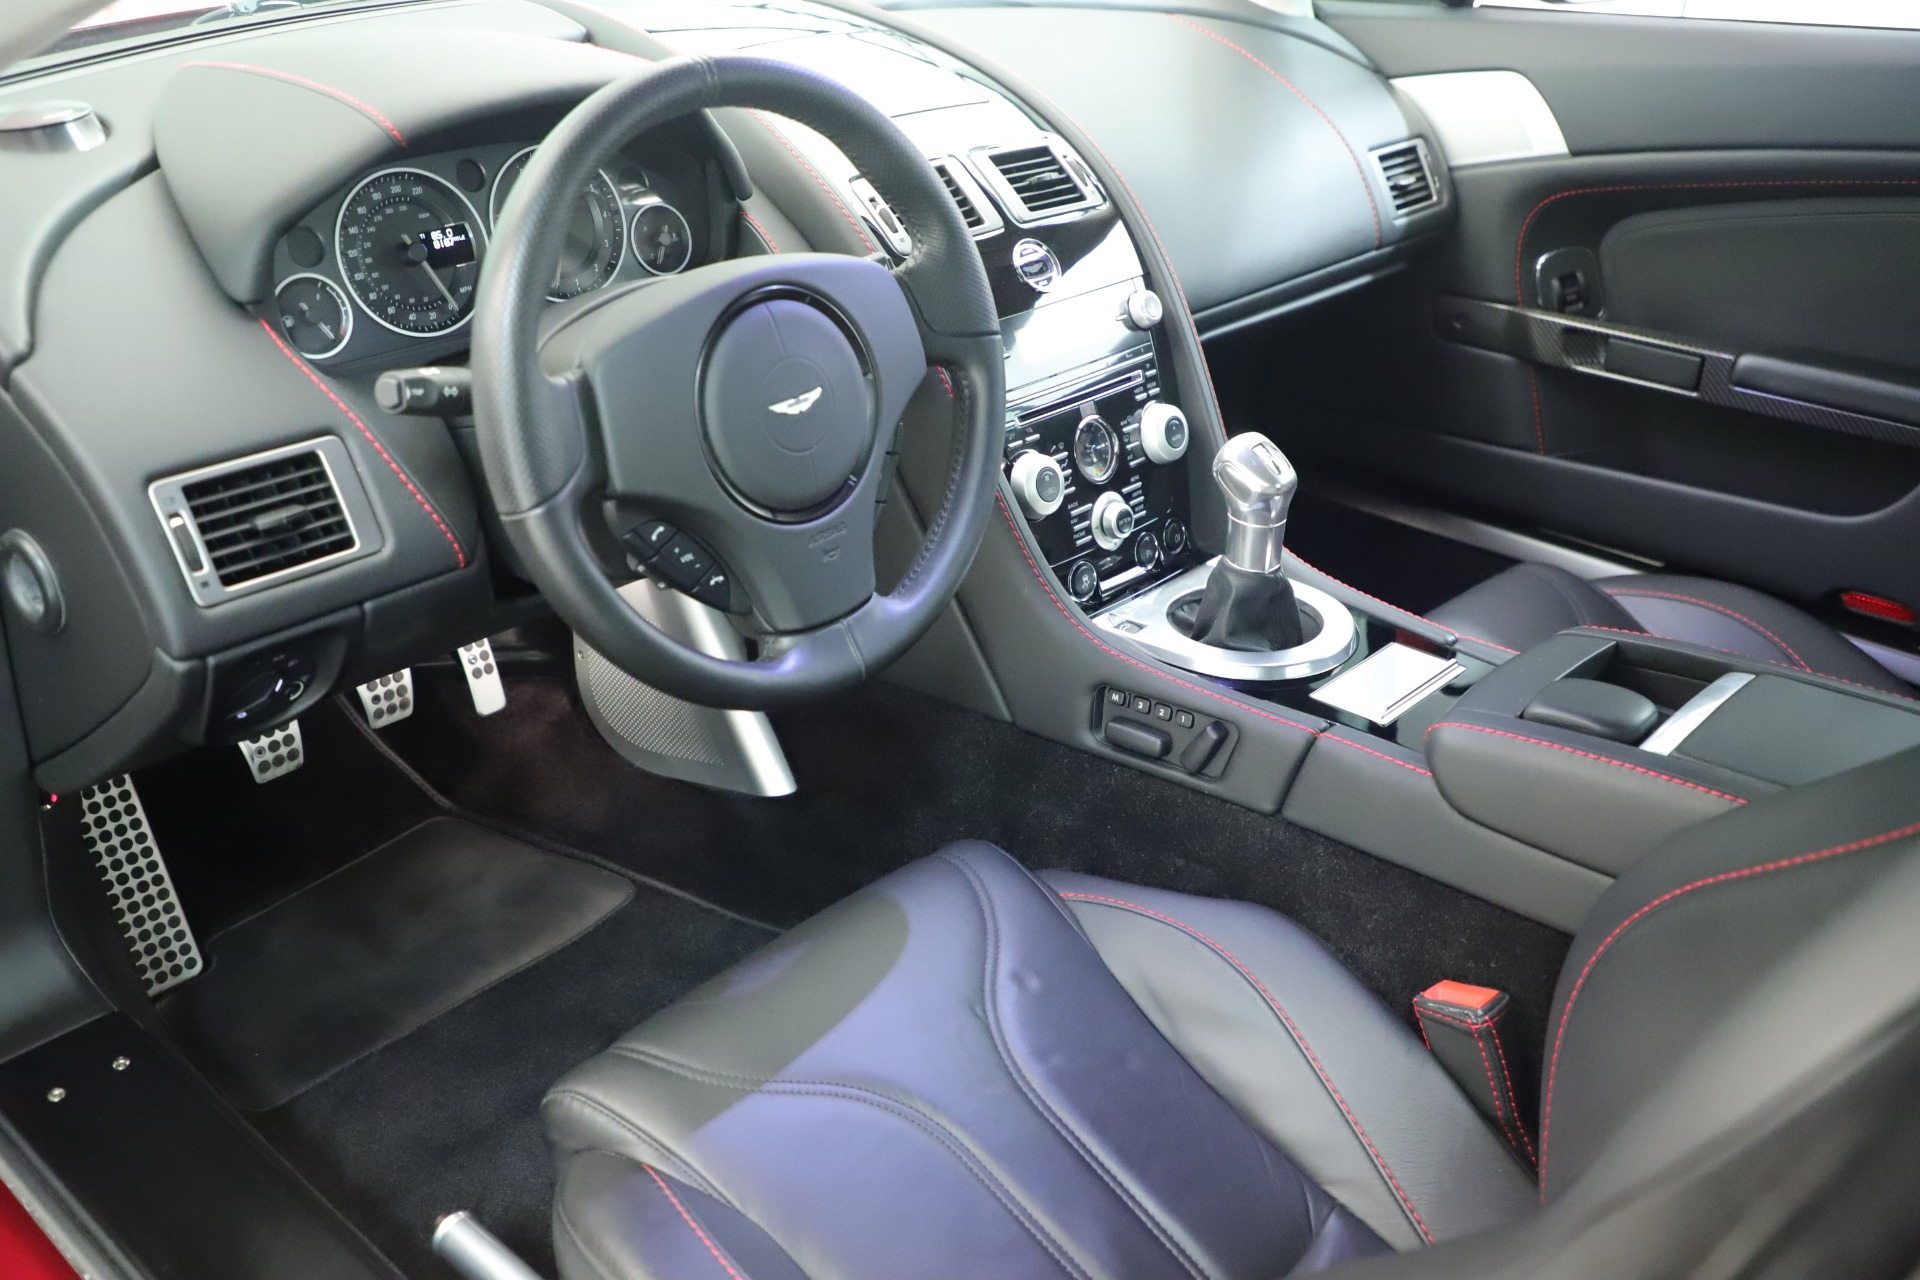 Used 2011 Aston Martin V12 Vantage Coupe For Sale In Greenwich, CT 3395_p20